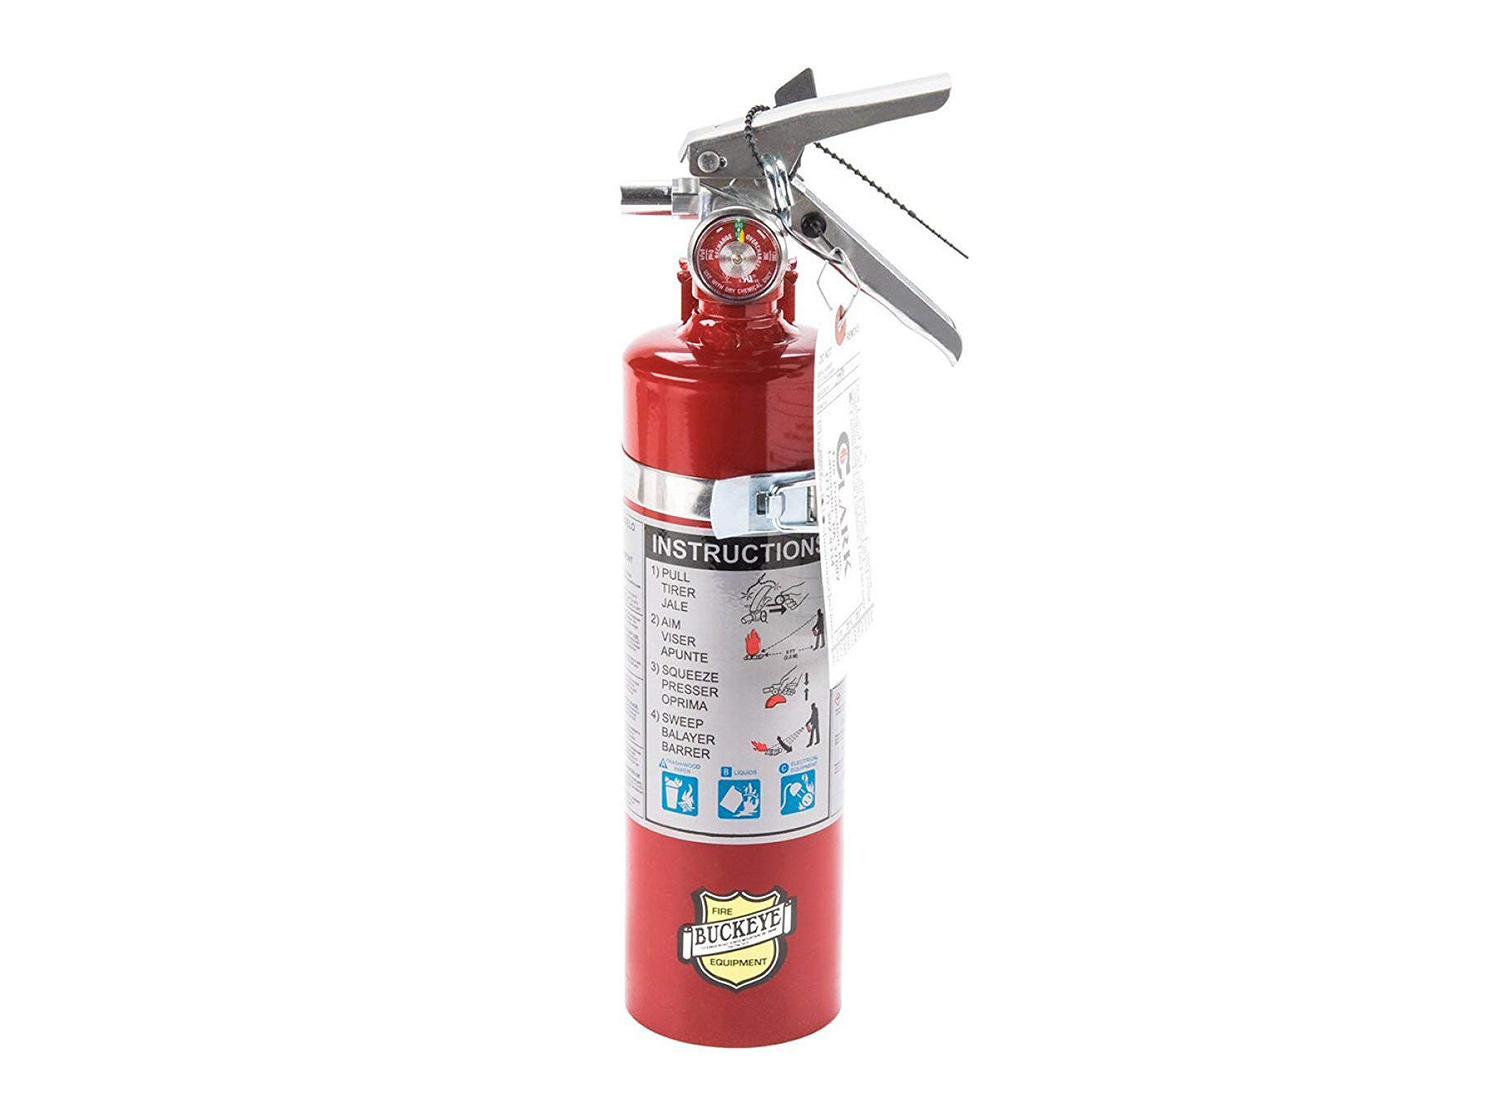 Buckeye fire ABC Dry chem extinguisher